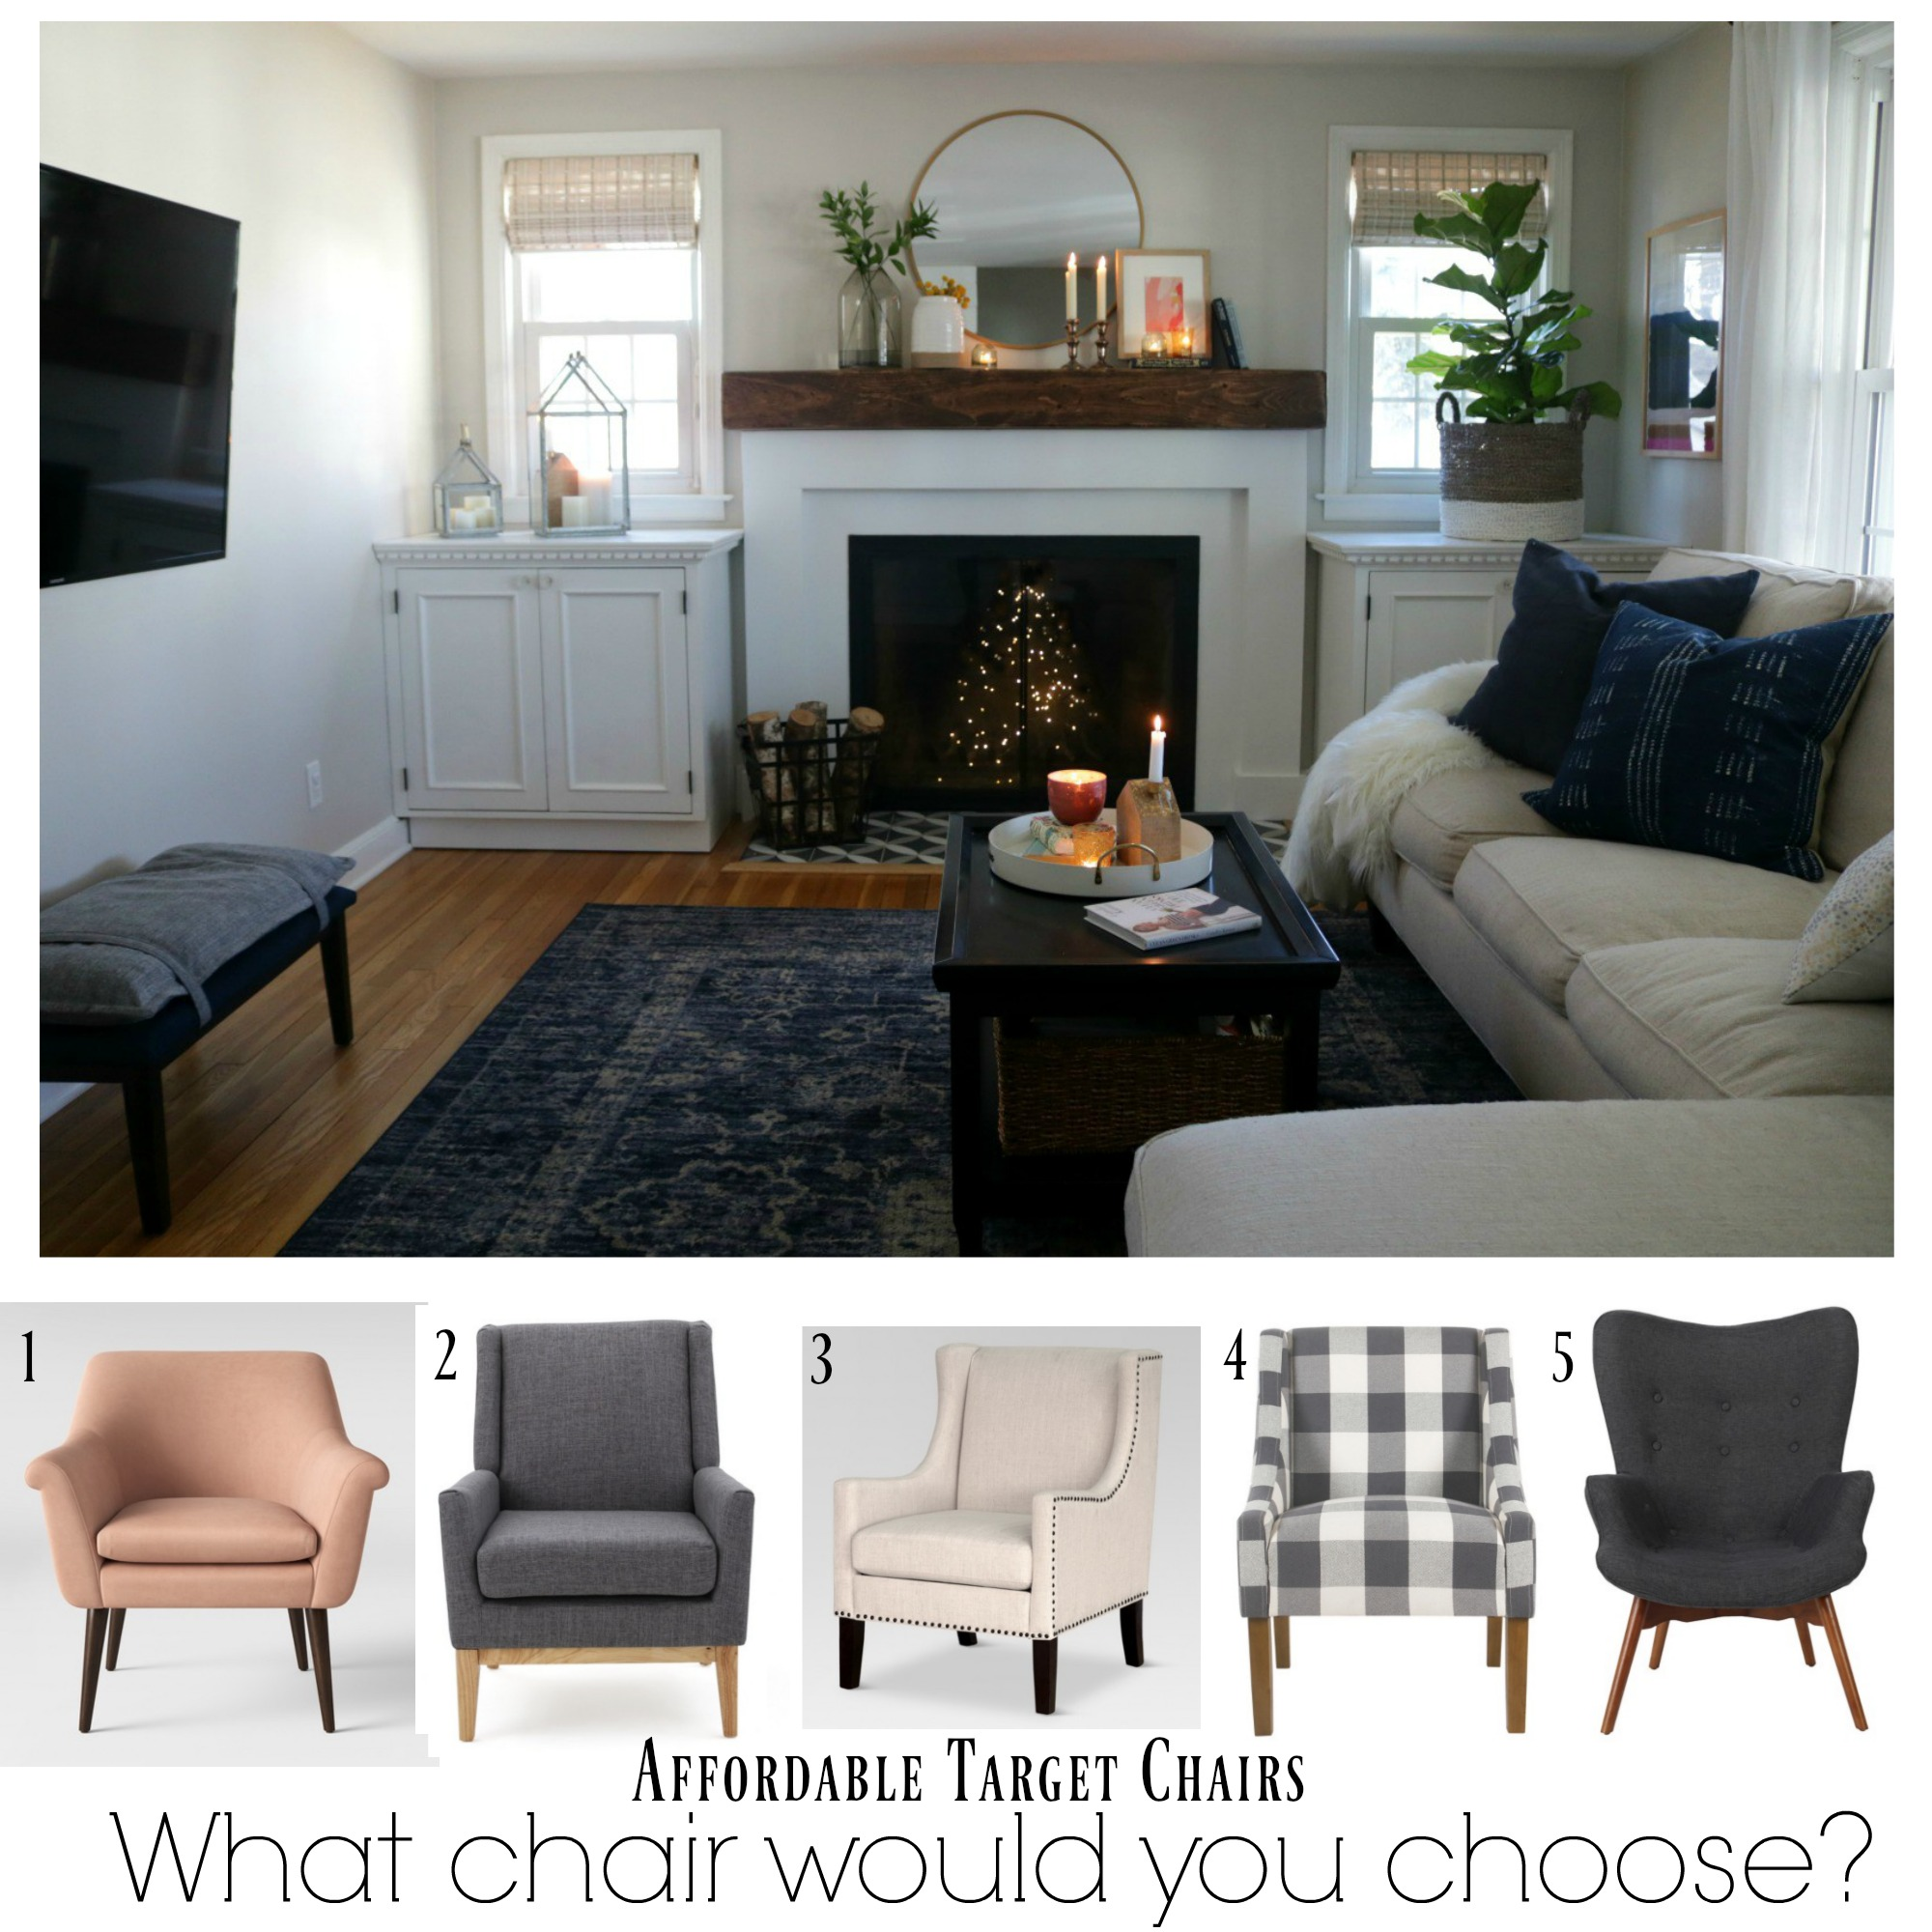 Affordable Target Chairs- What one would you choose?